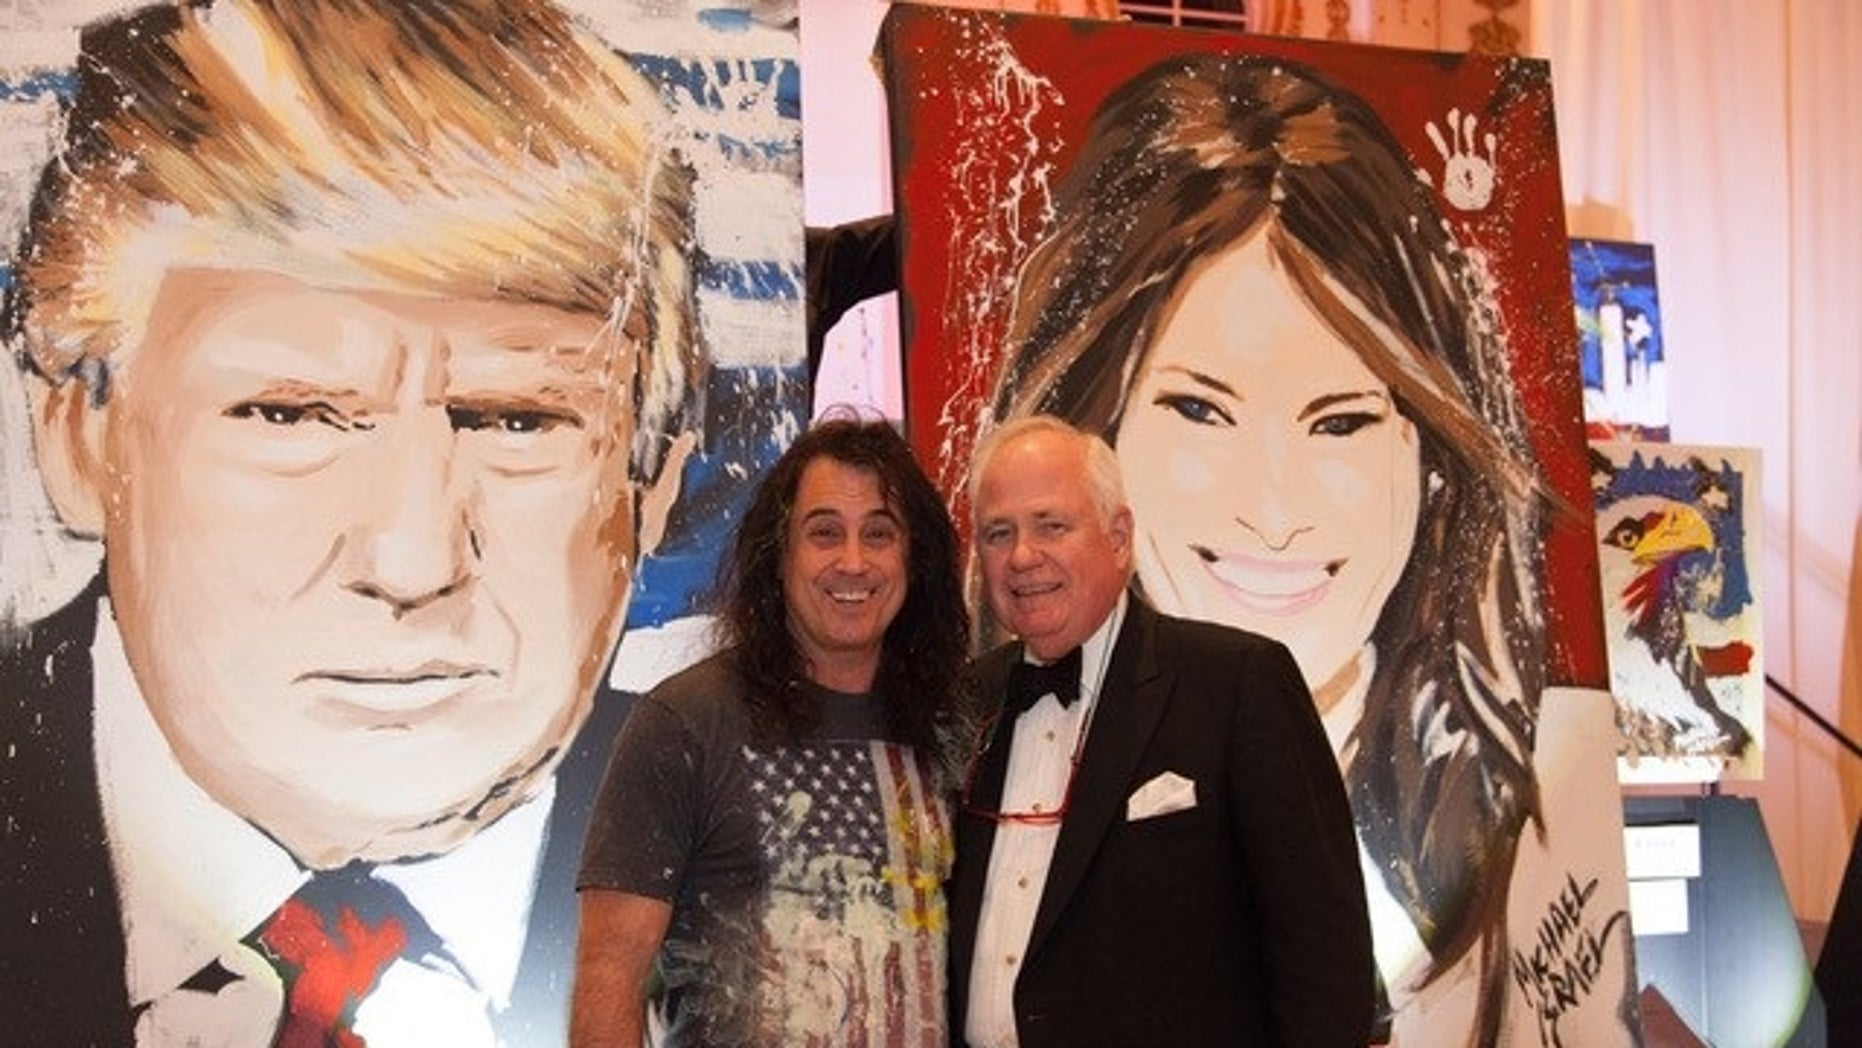 Artist Michael Israel poses with Timothy Lane, the man who bidded the highest for the paintings of President Trump and first lady Melania Trump.